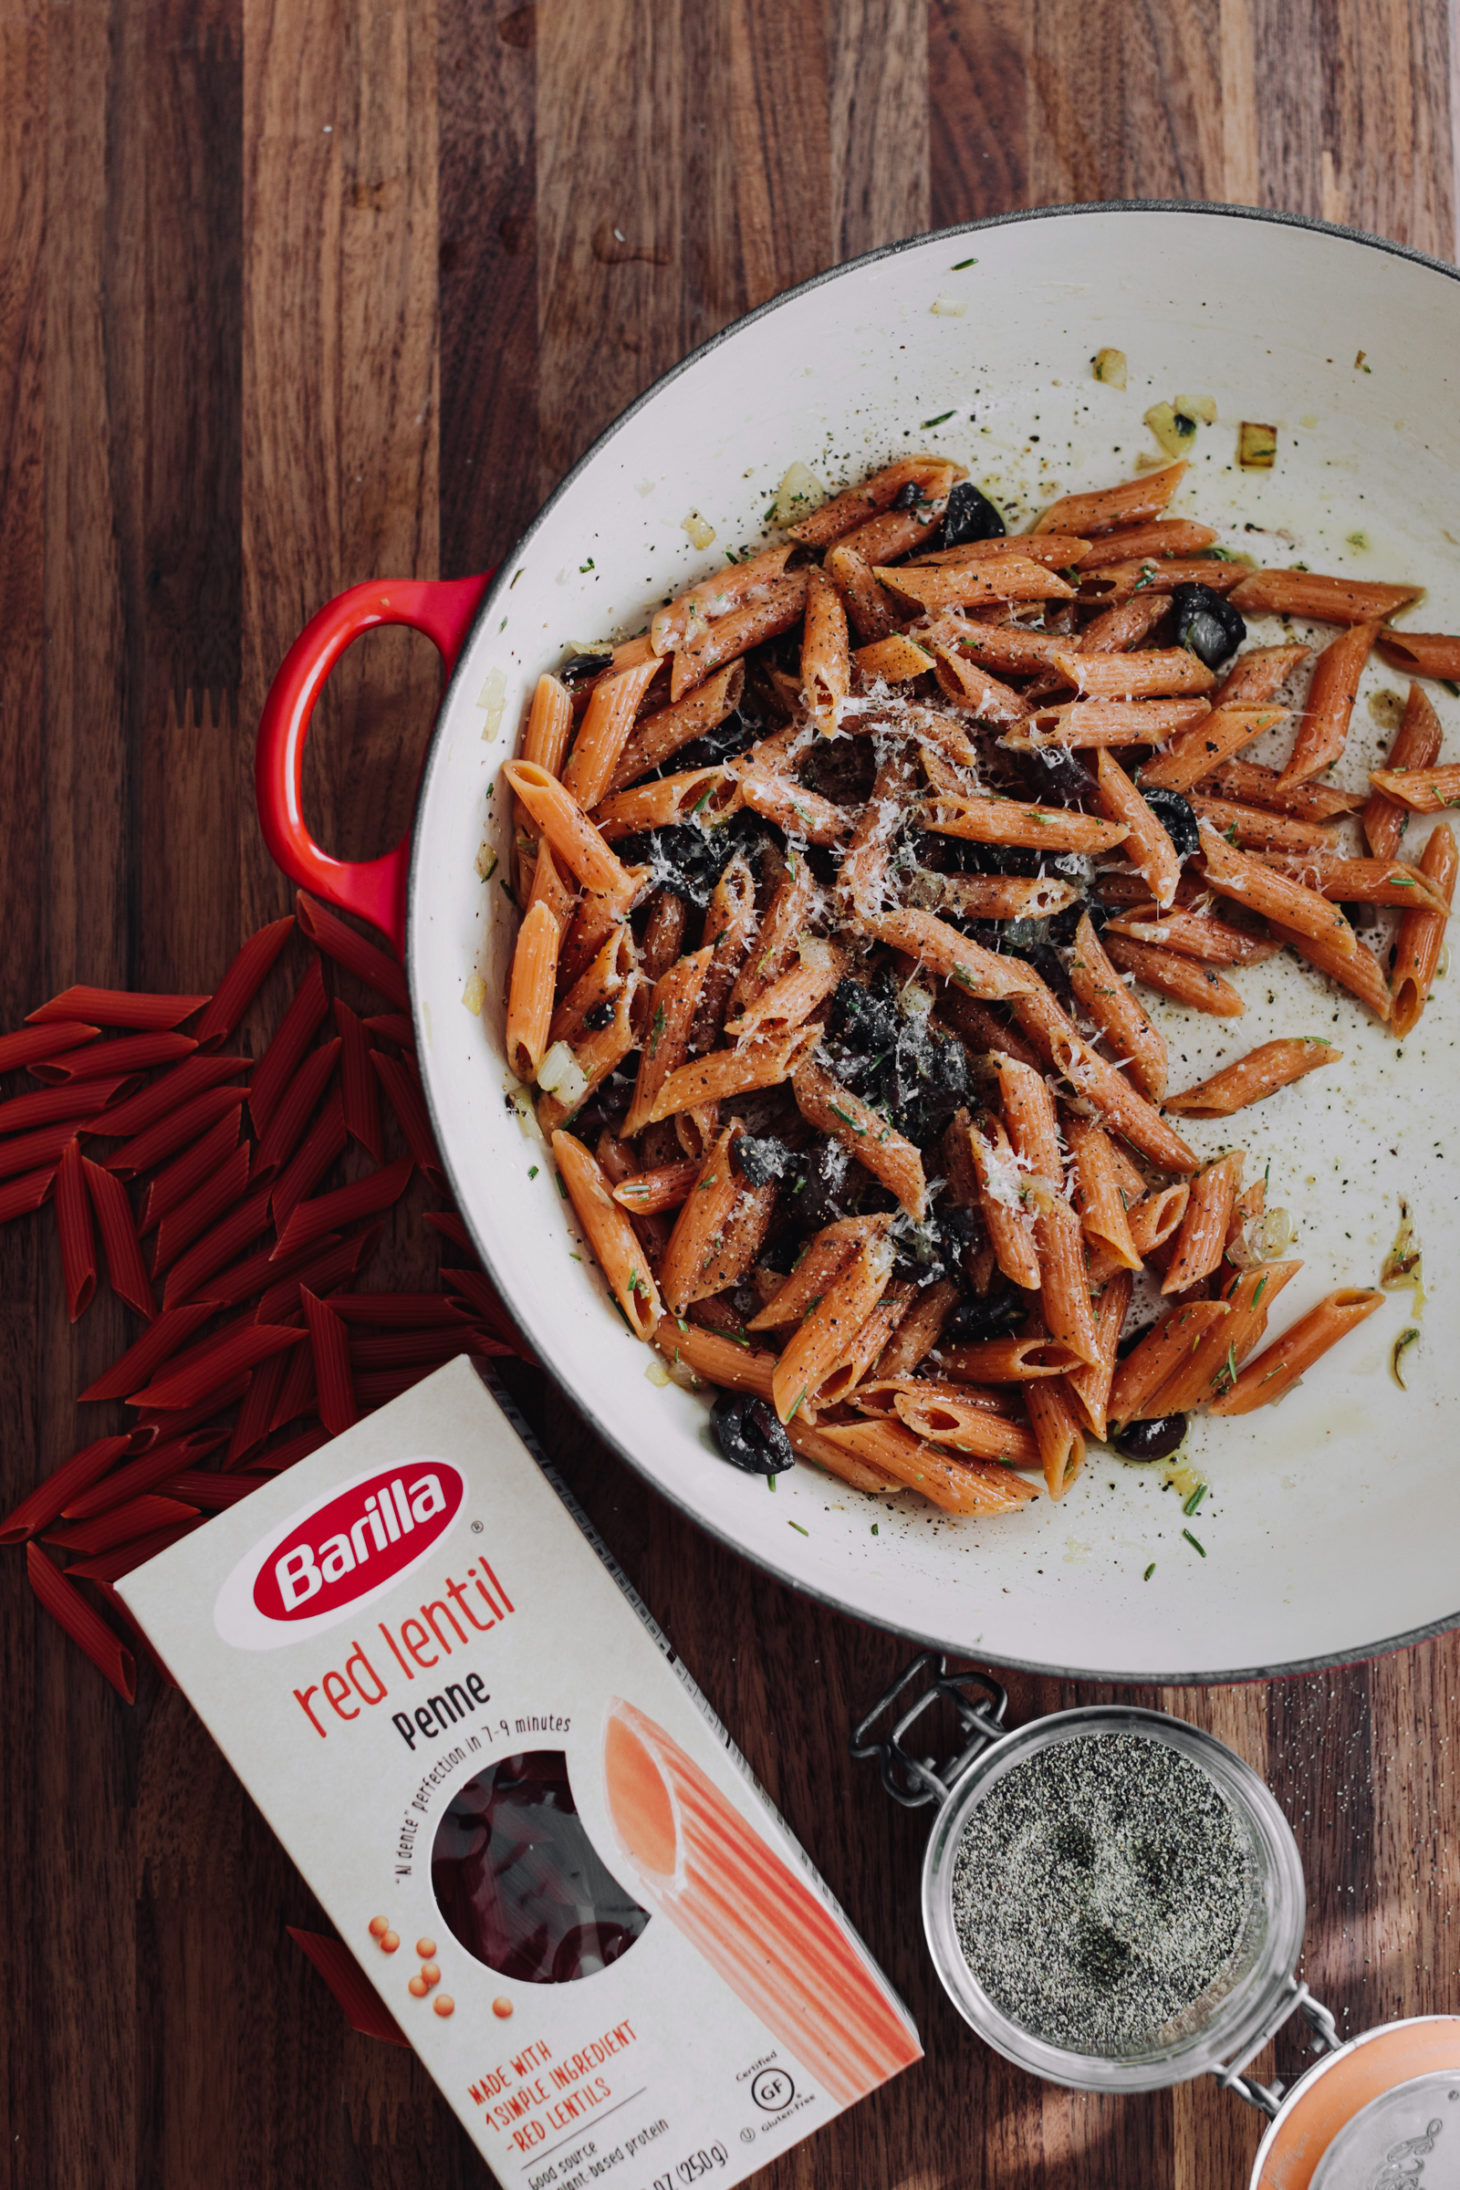 Overhead photograph of red lentil pasta with olives and a box of barilla pasta.